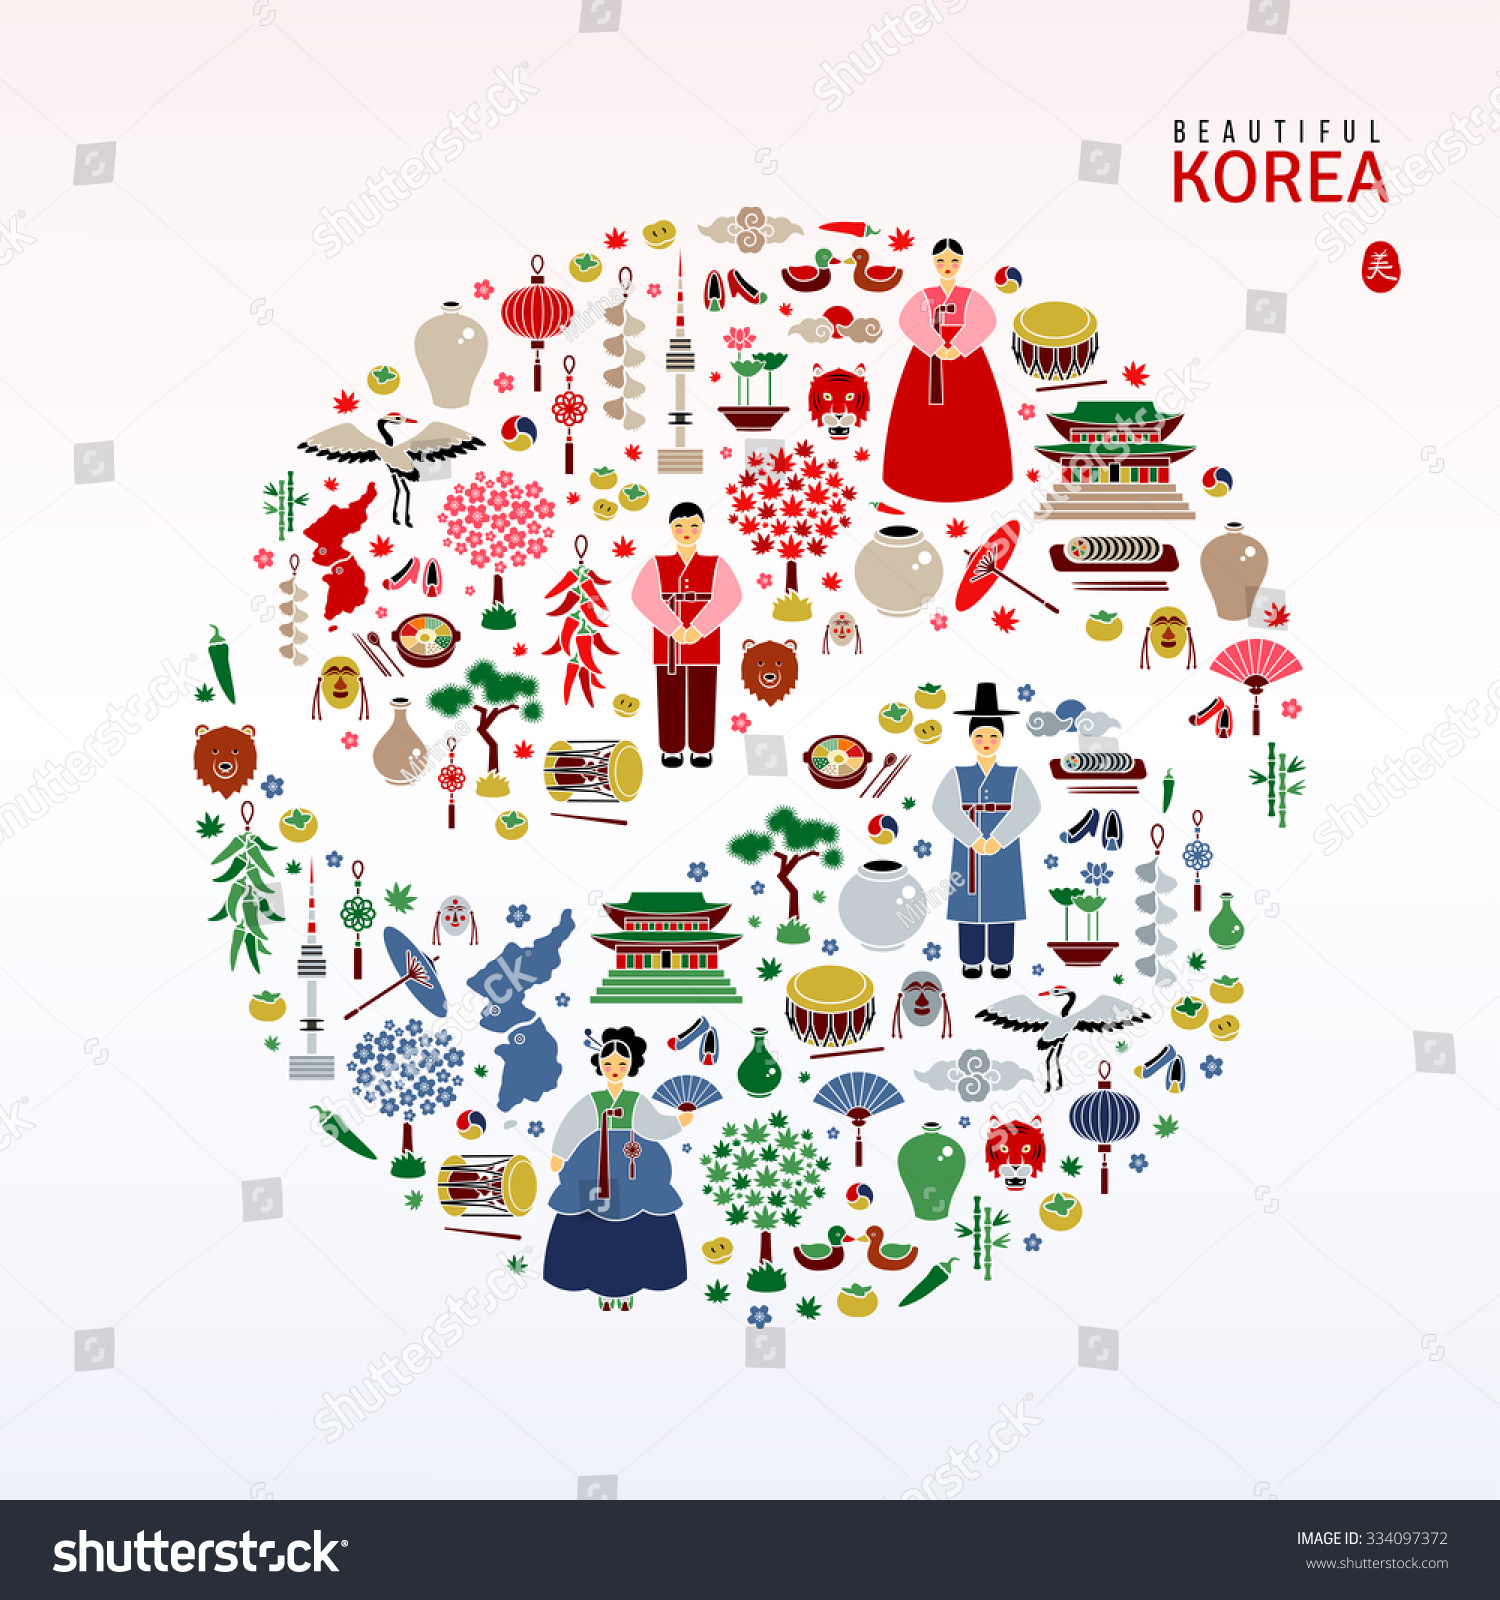 Korean Culture Symbols 3500815 Scarsezefo